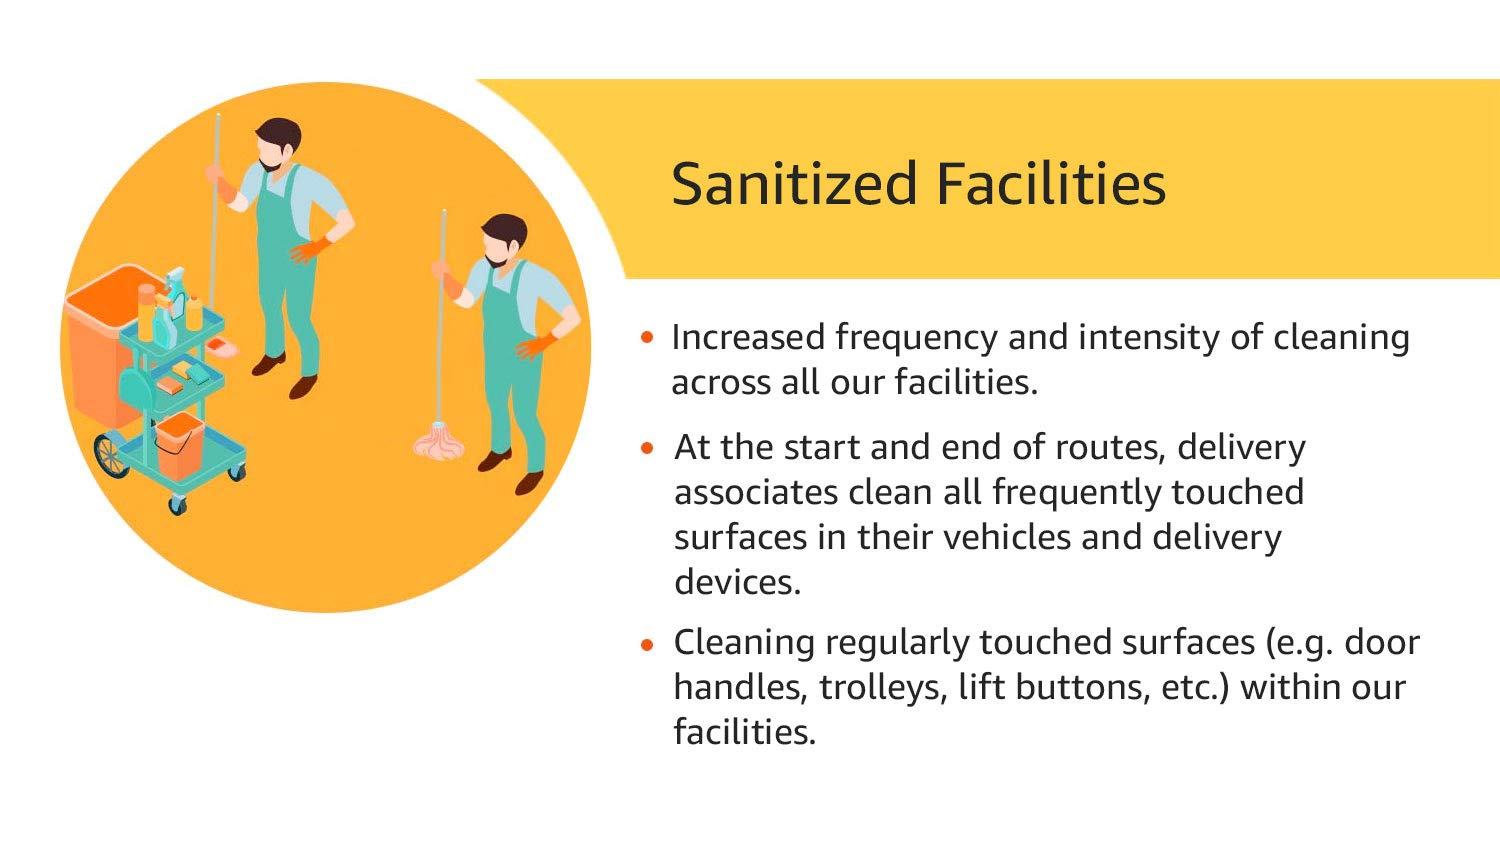 Sanitized Facilities